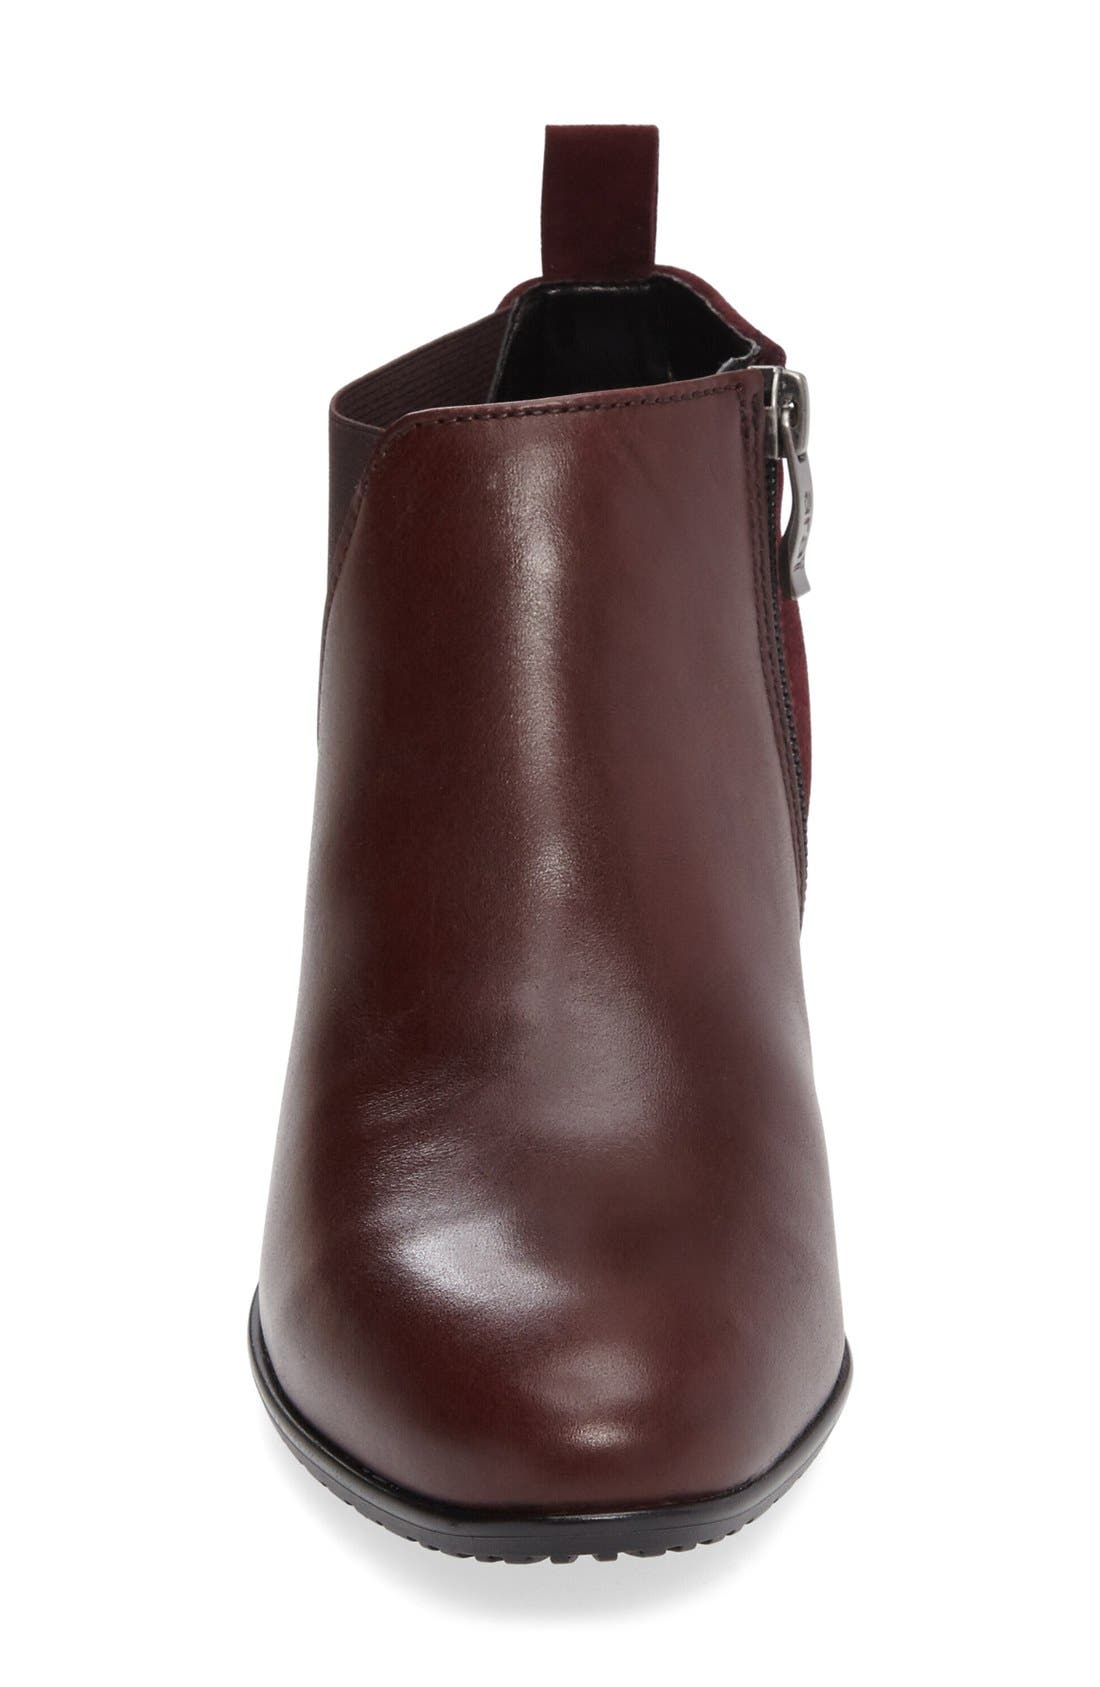 'Patty' Block Heel Boot,                             Alternate thumbnail 7, color,                             BURGUNDY LEATHER